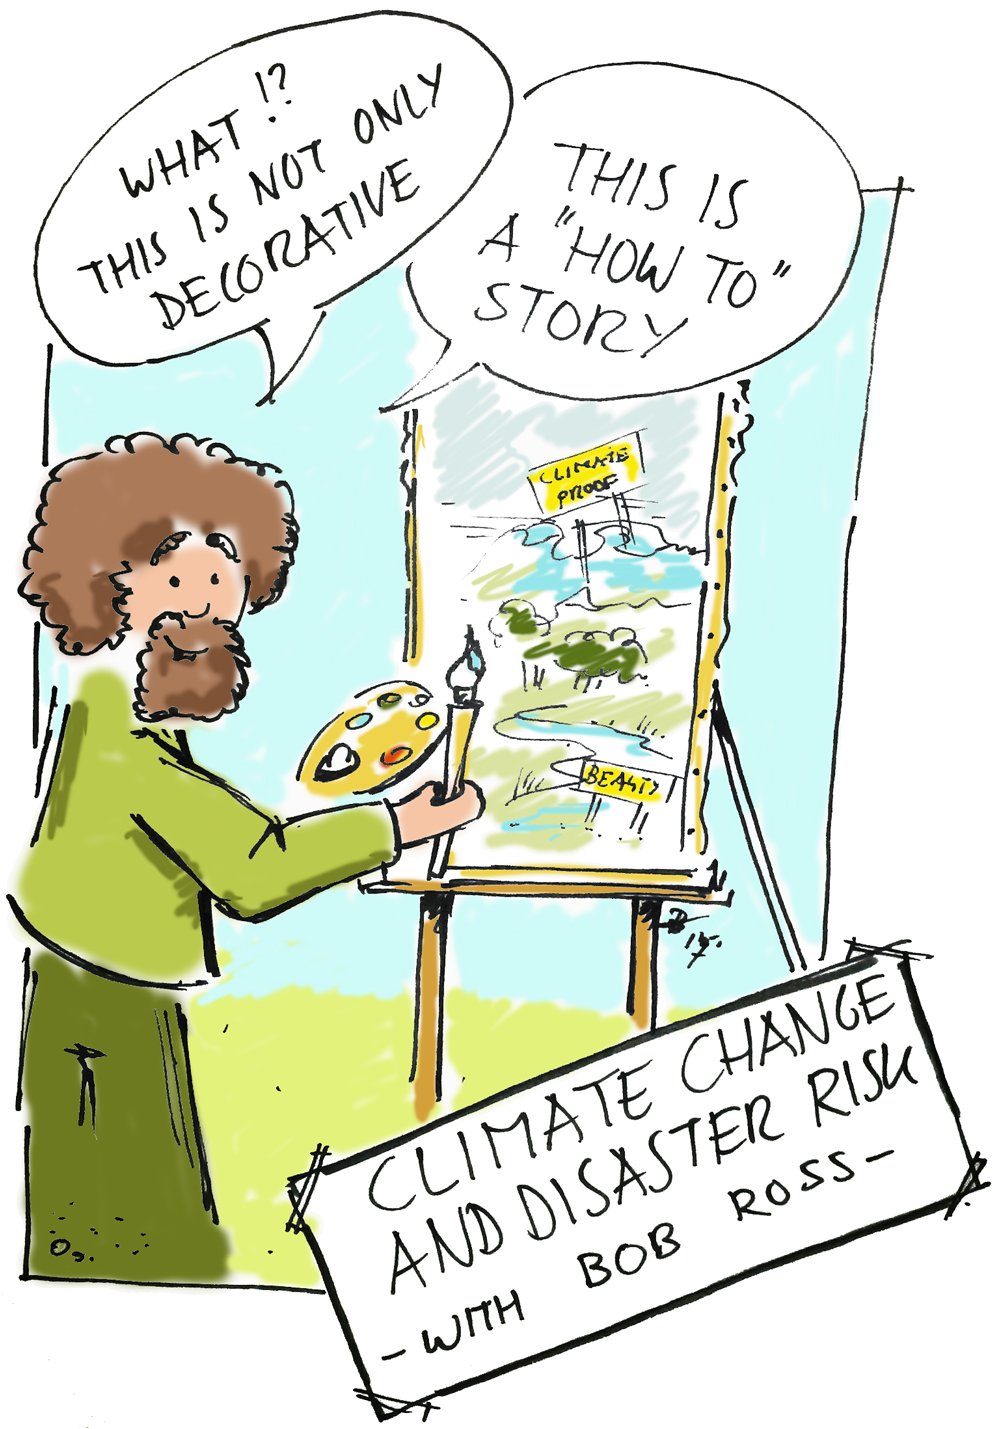 Illustration of painter creating a story on his easel